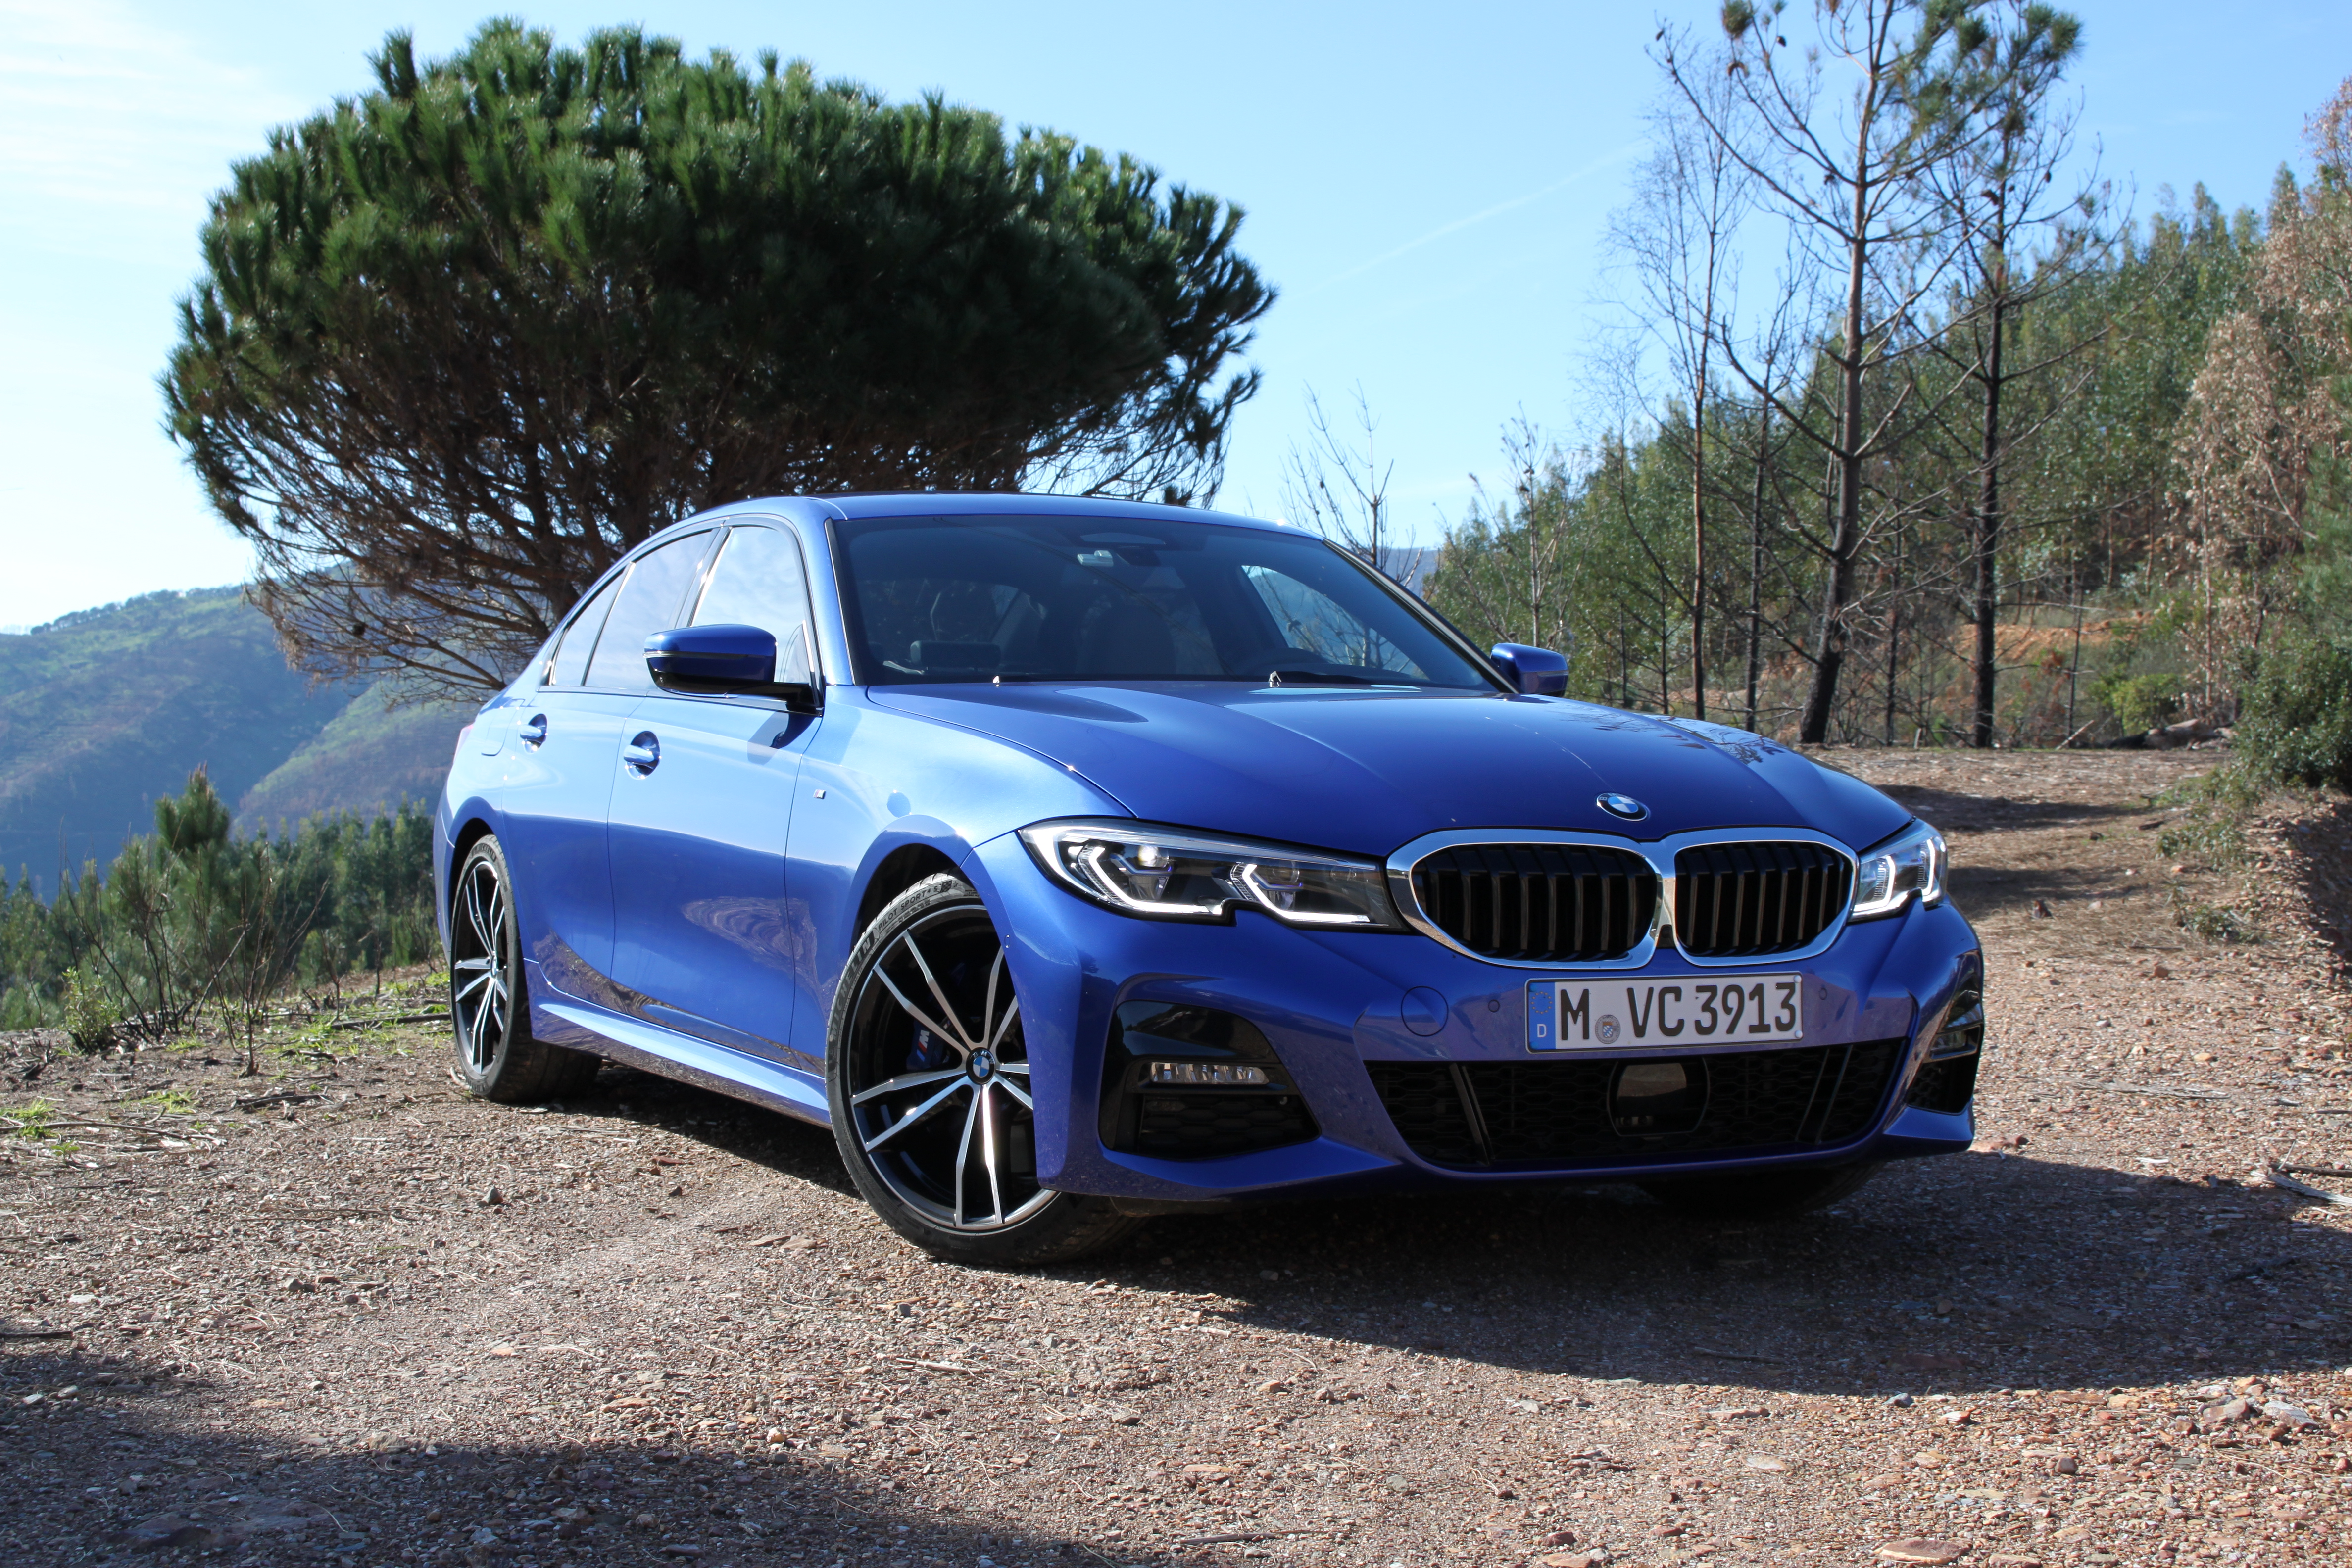 95 The Best 2020 BMW 3 Series New Review